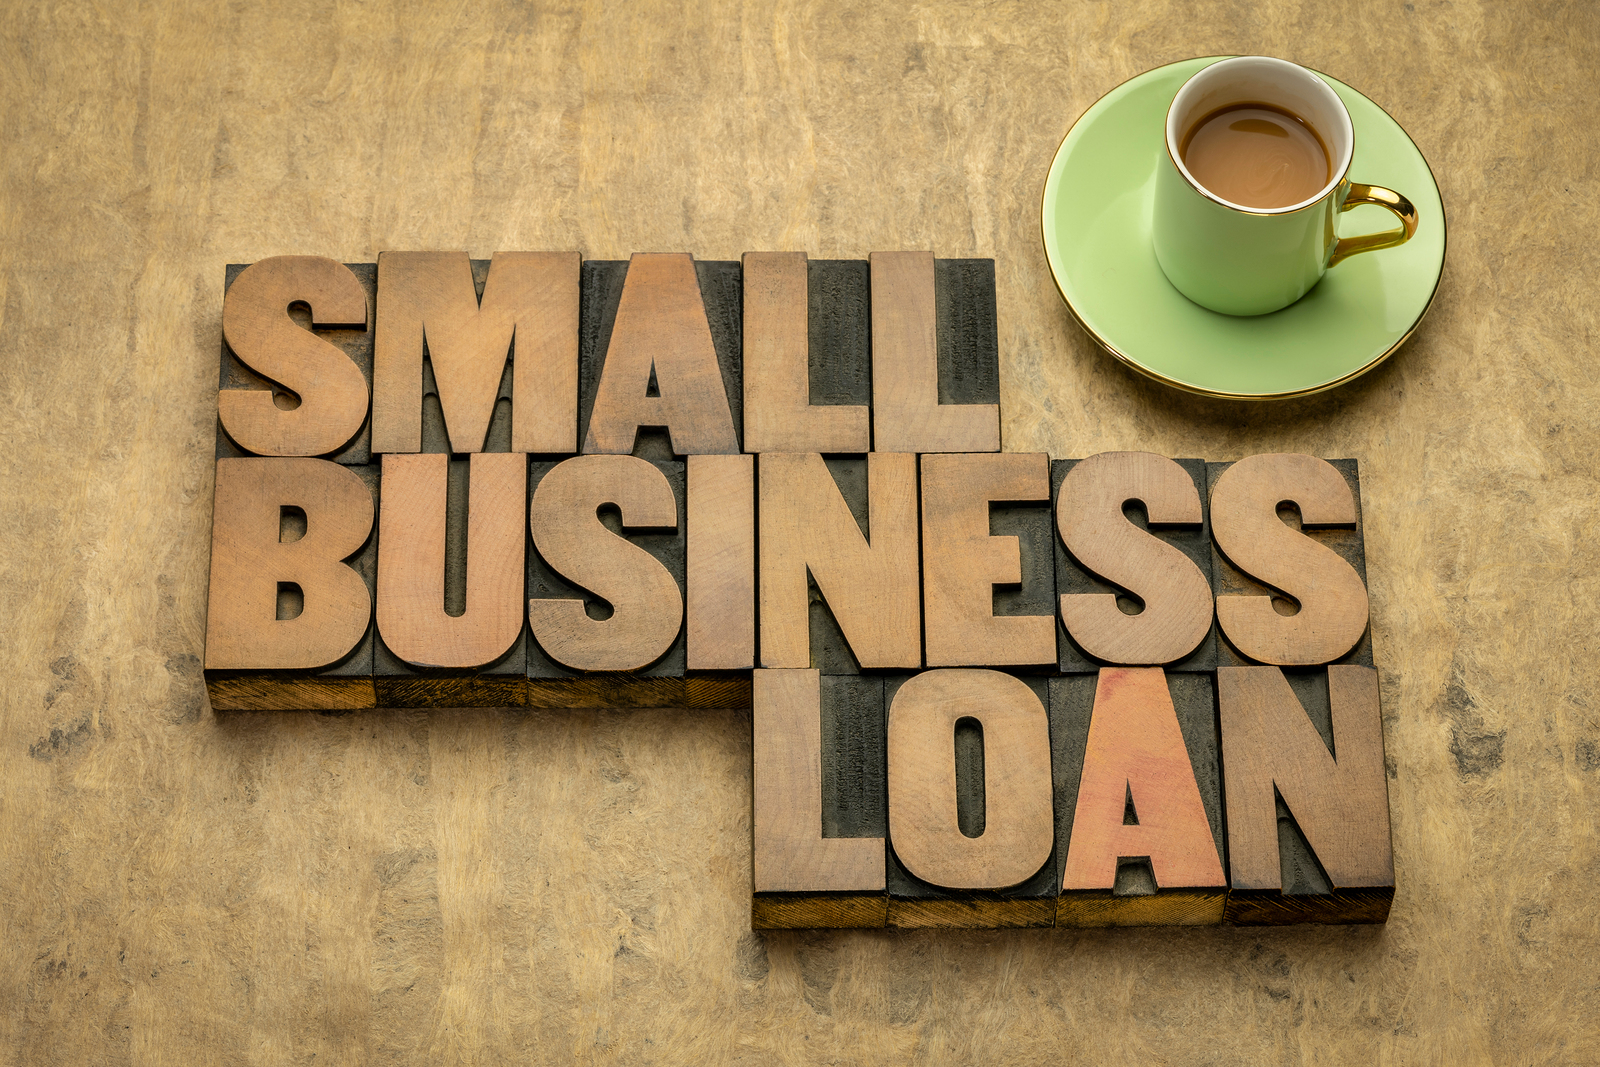 United medical Credit Now offers business loans